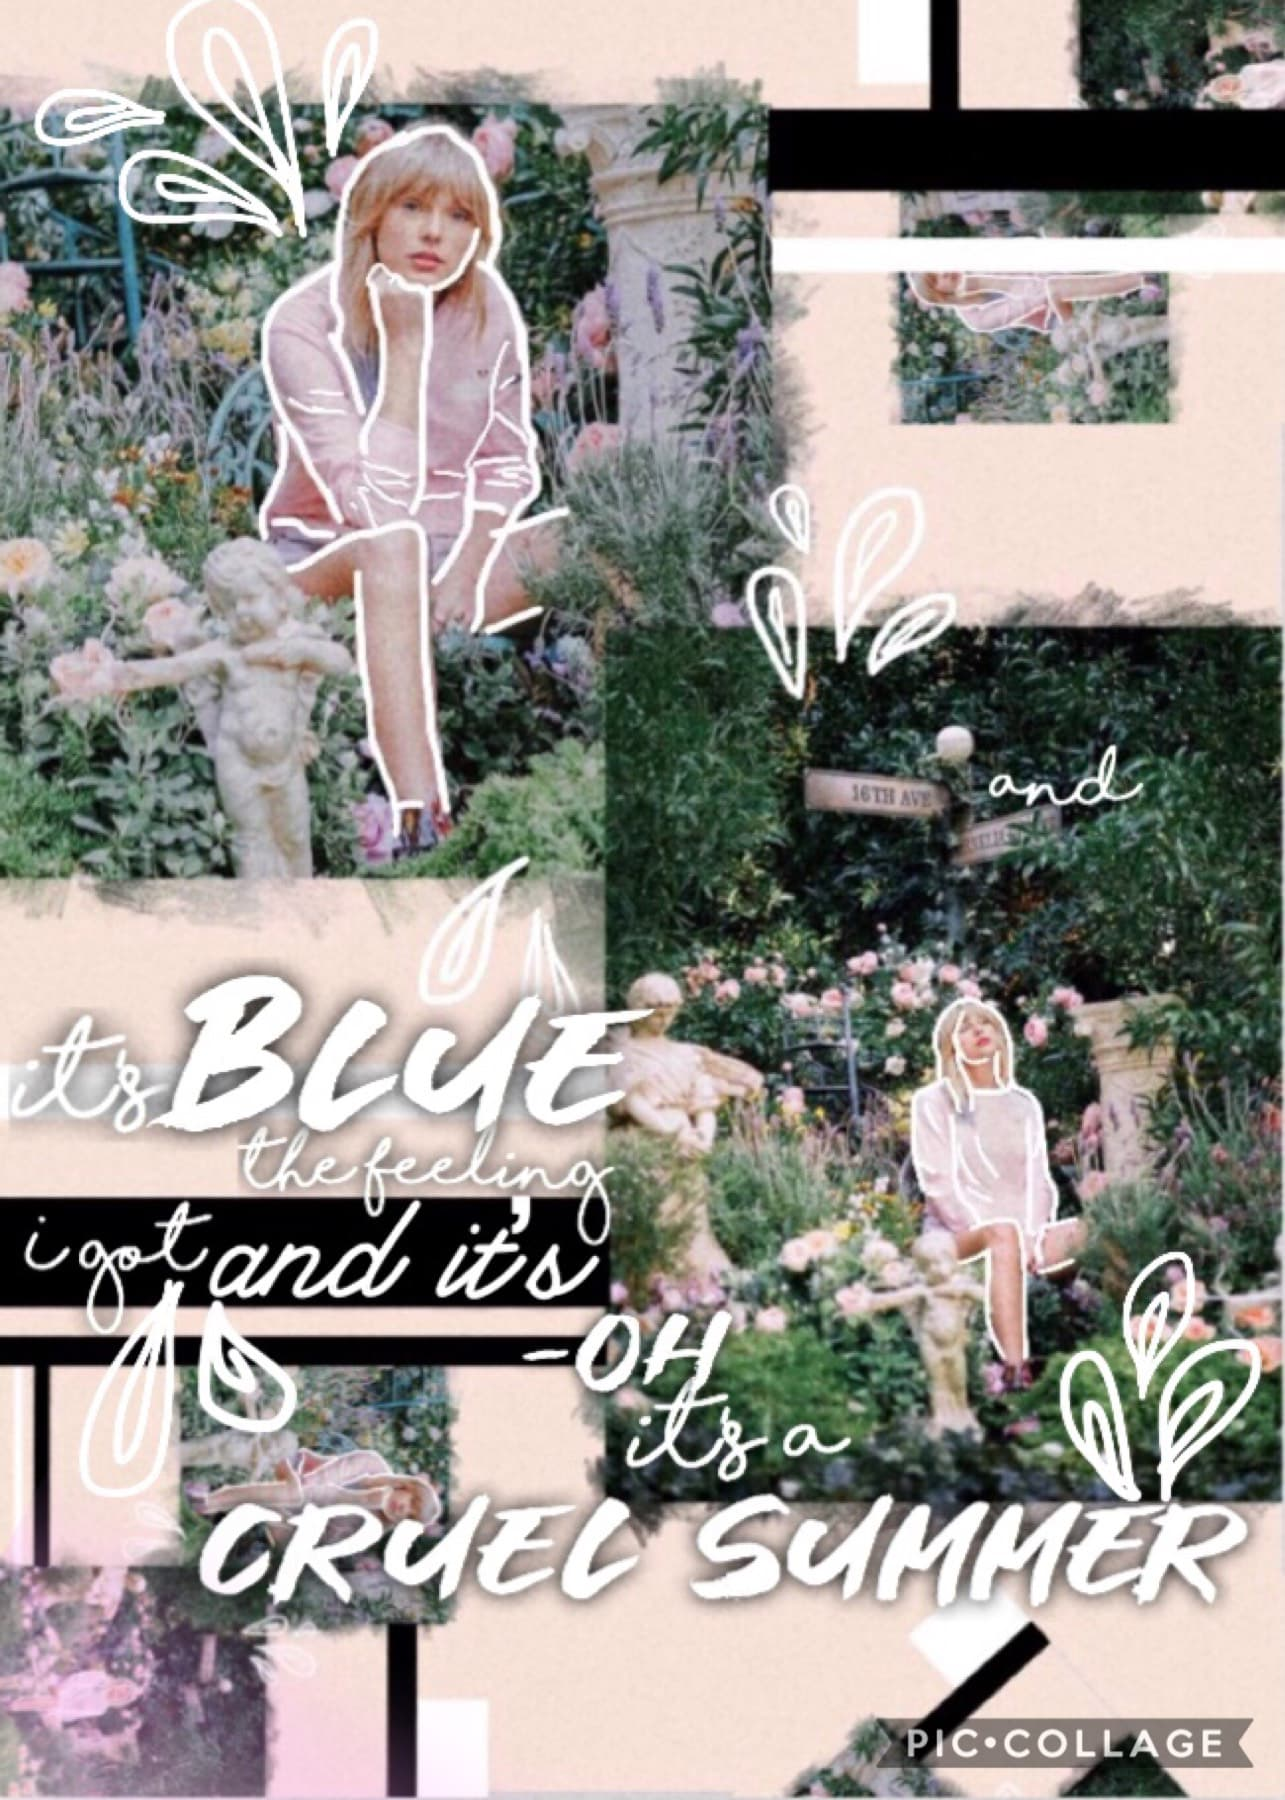 tappity tap eeeek first collage~I am actually kind of happy with this ✨ Who else is an absolute swiftie?